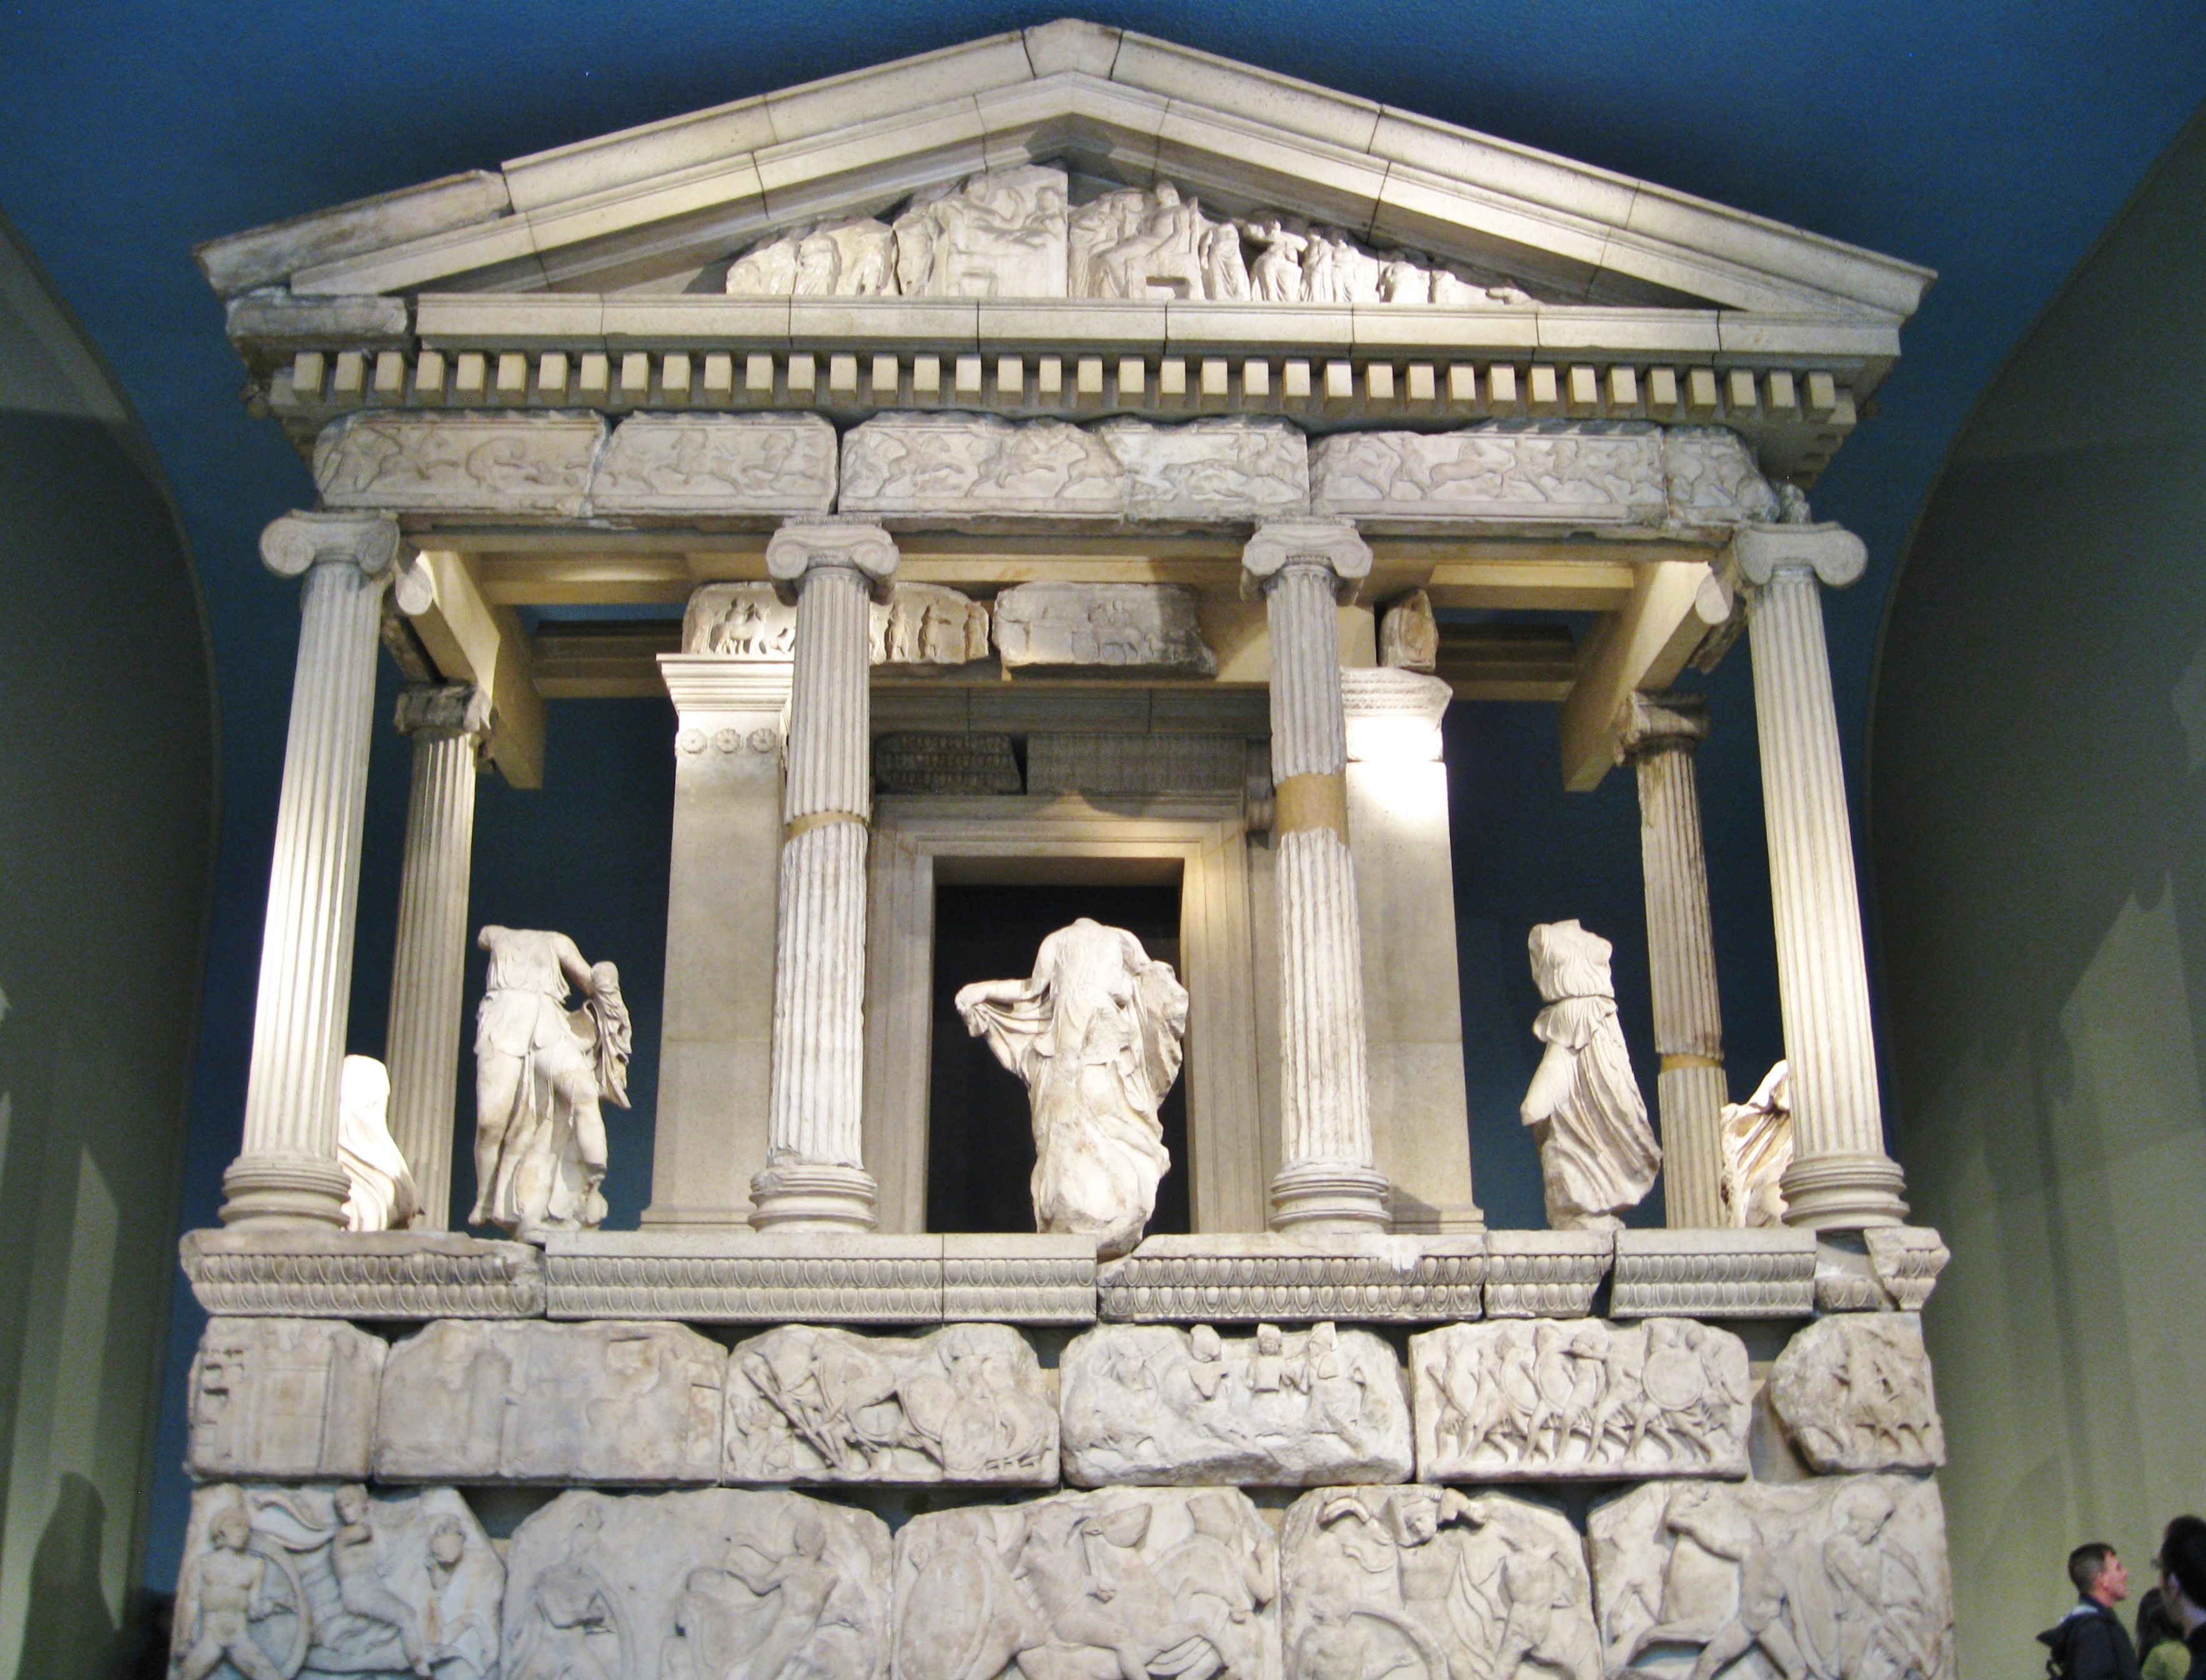 greek architecture essay Greek architecture is distinguished by its three famous column designs known as the doric, ionic and corinthian, which consist of decorated pediments with a focus on.